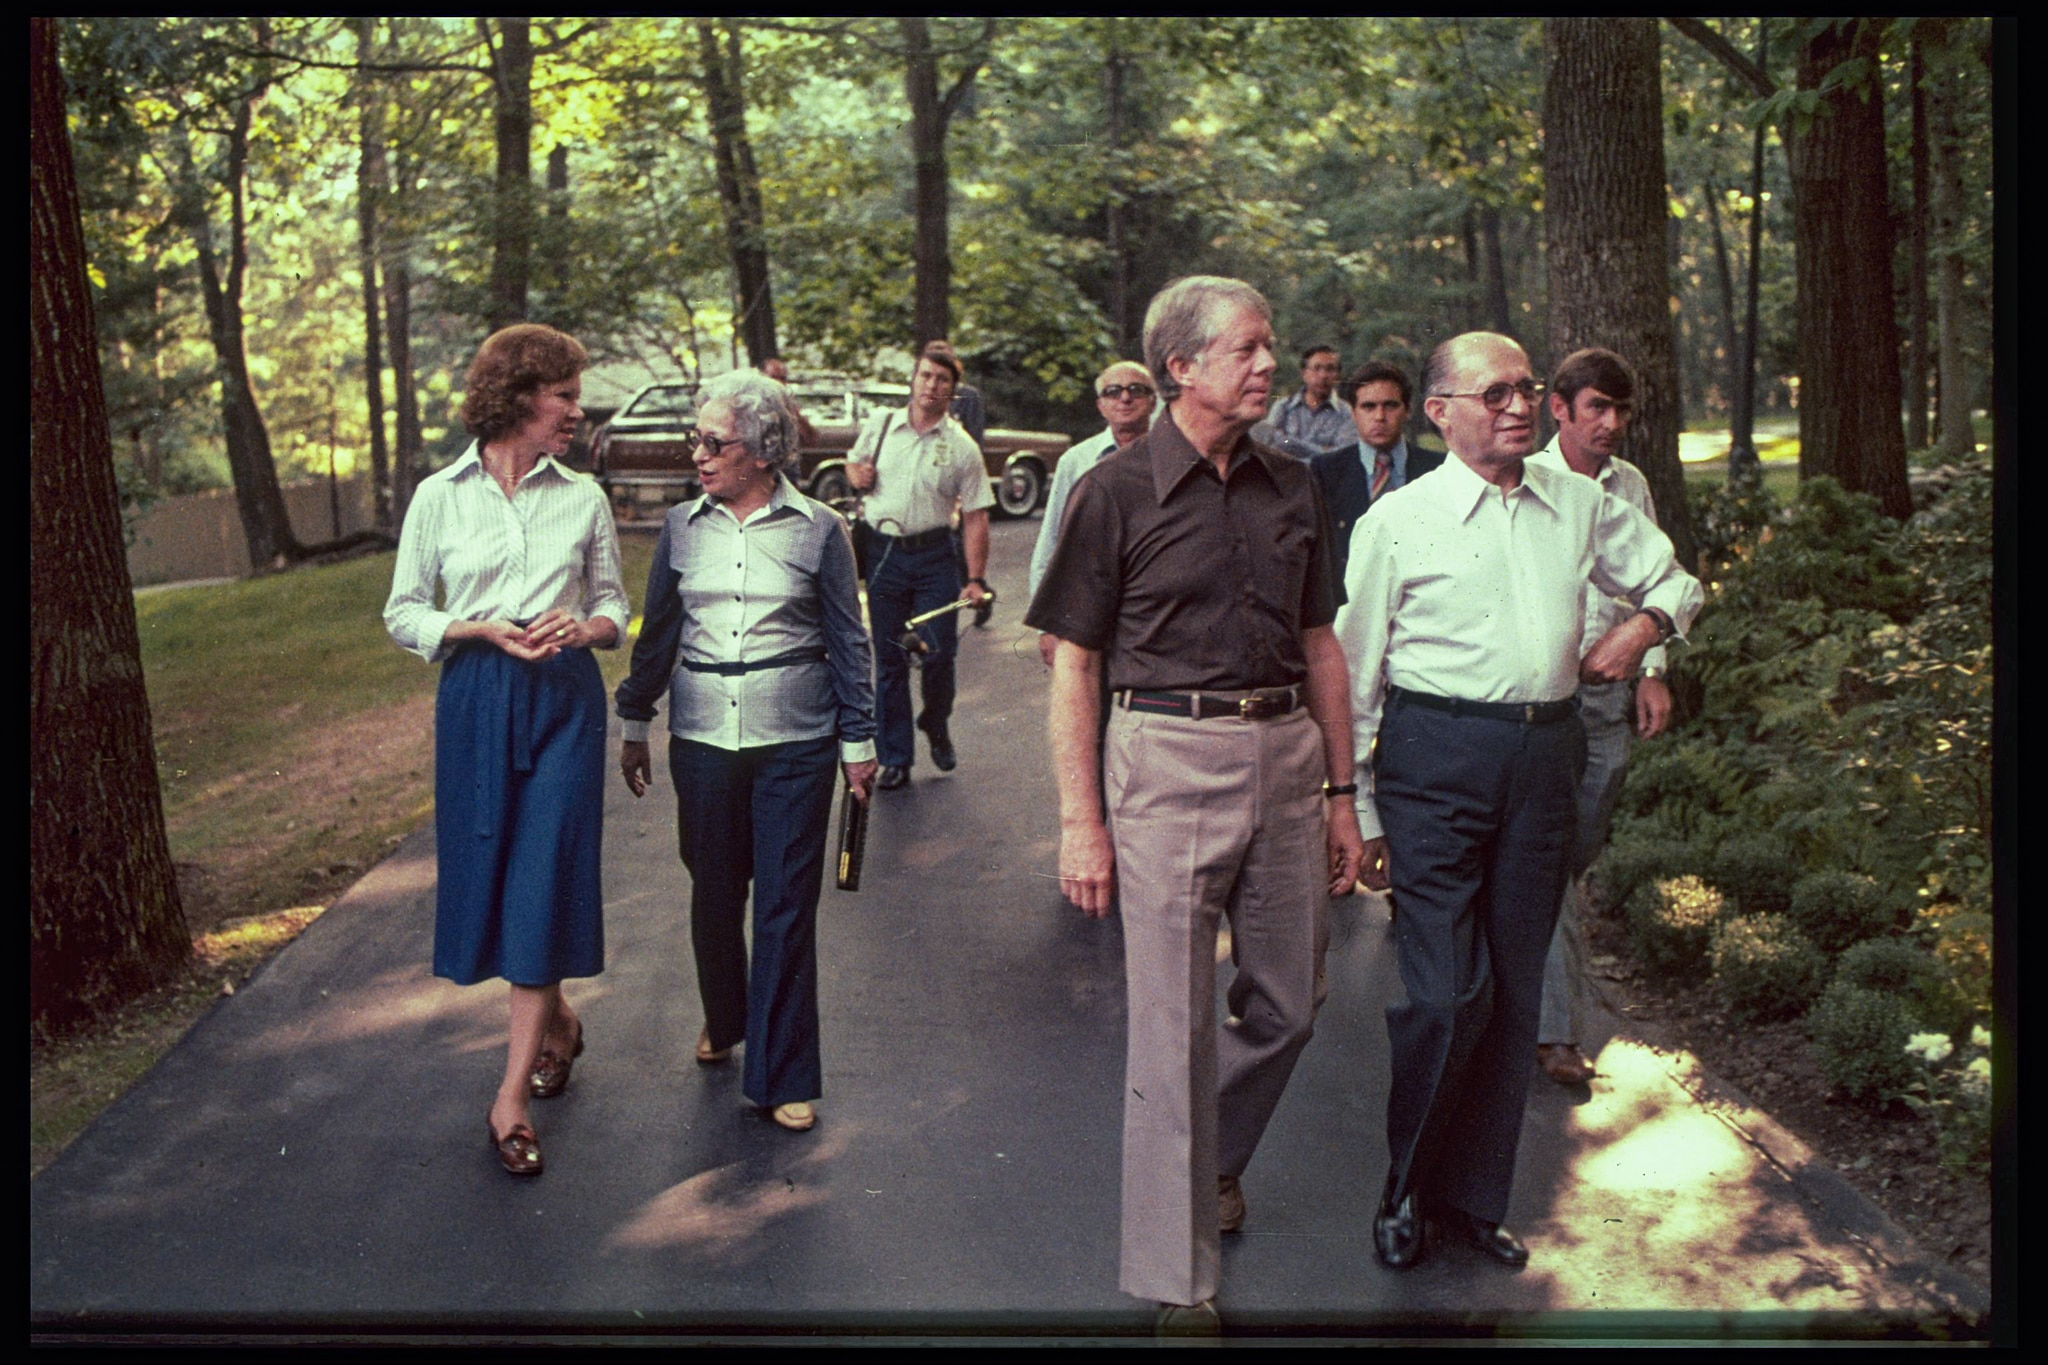 President Carter and others walking on wooded path (State Dept.)